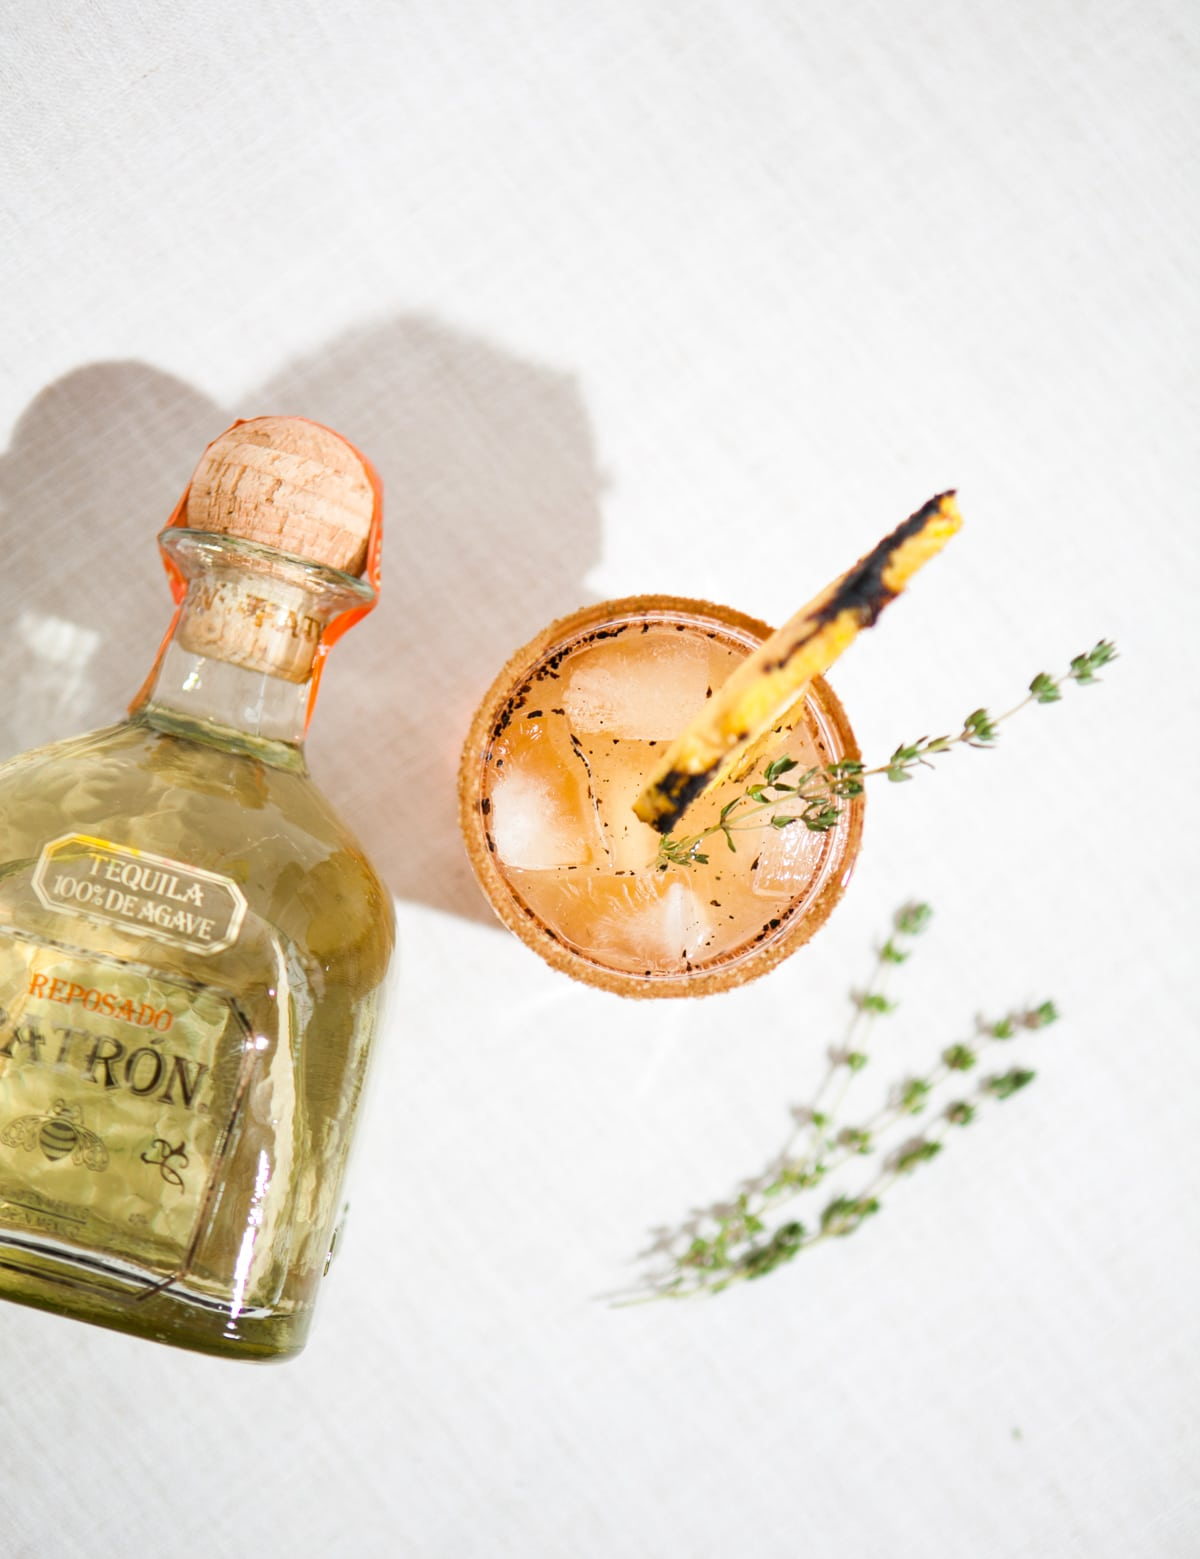 The Saucy Señorita | Grilled Pineapple Margarita Recipe | Patrón Reposado | Cinco de Mayo | Tequila Cocktails | Jessica Brigham Magazine Ready for Life